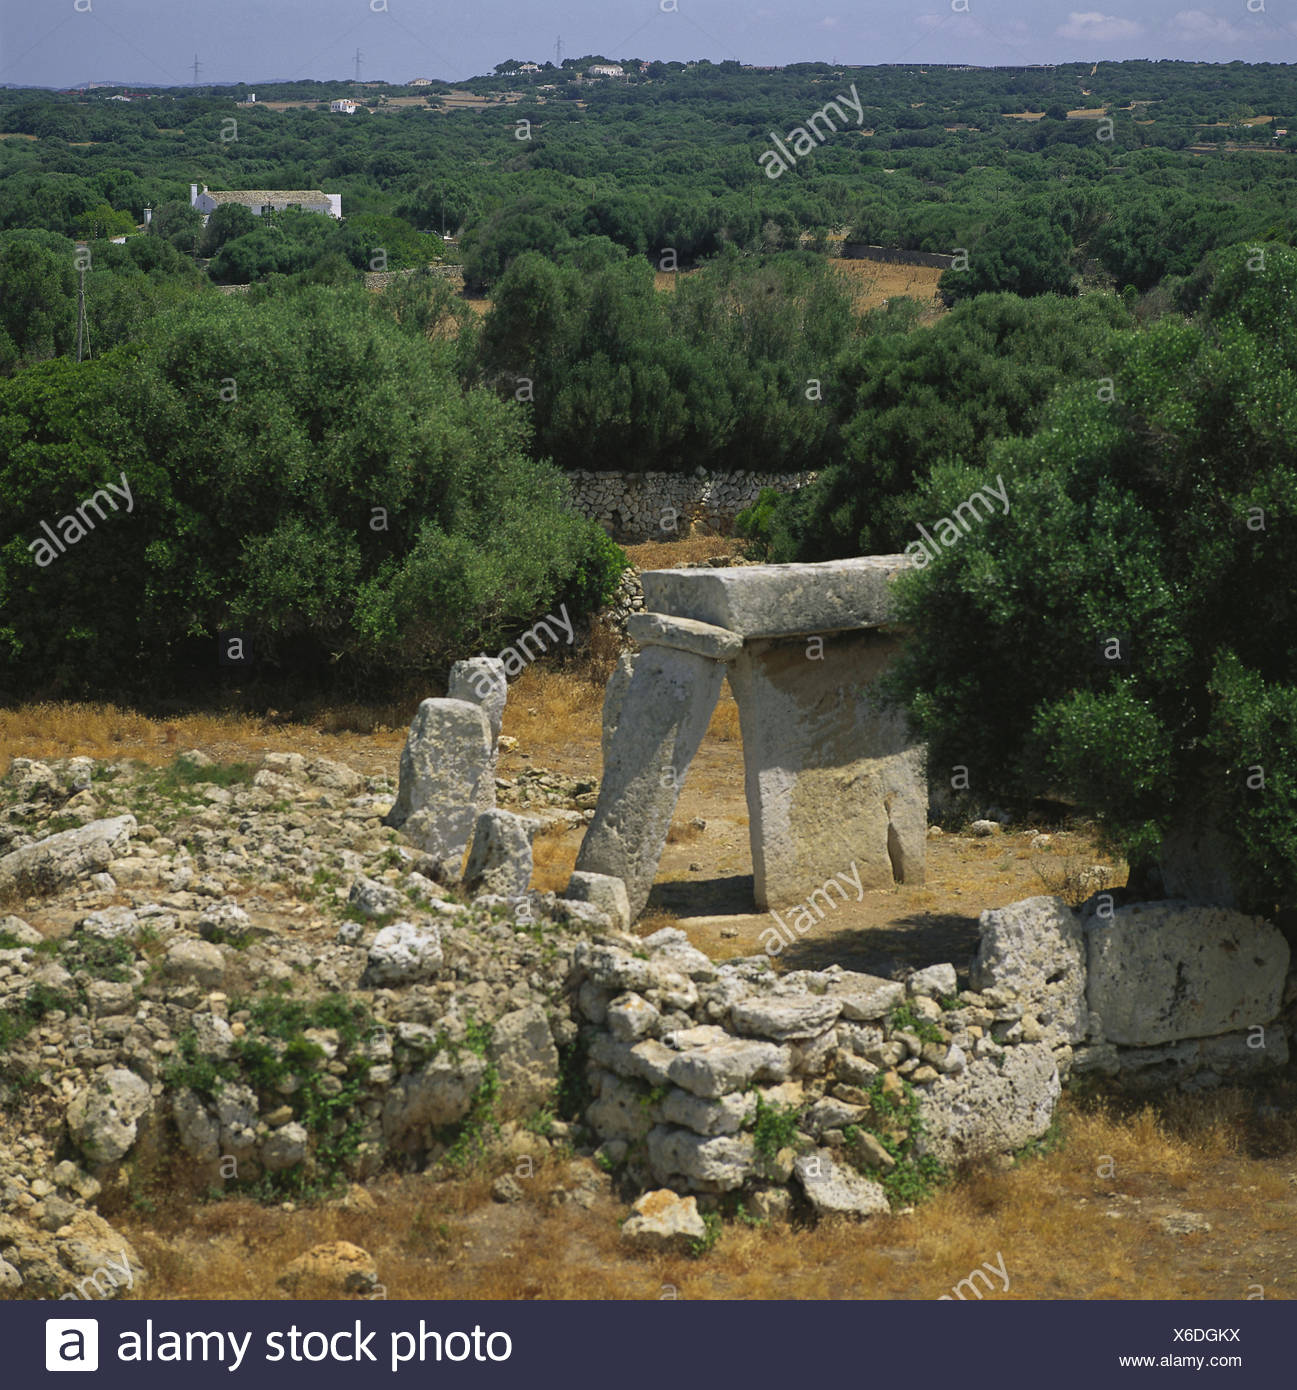 Spain, Menorca, Mao, scenery, Talati de Dalt, 'Taula', stone formations, the Balearic Islands, island, the Mediterranean Sea, settlement, antique, restores, prehistorically, stone prop, keystone, place of interest - Stock Image